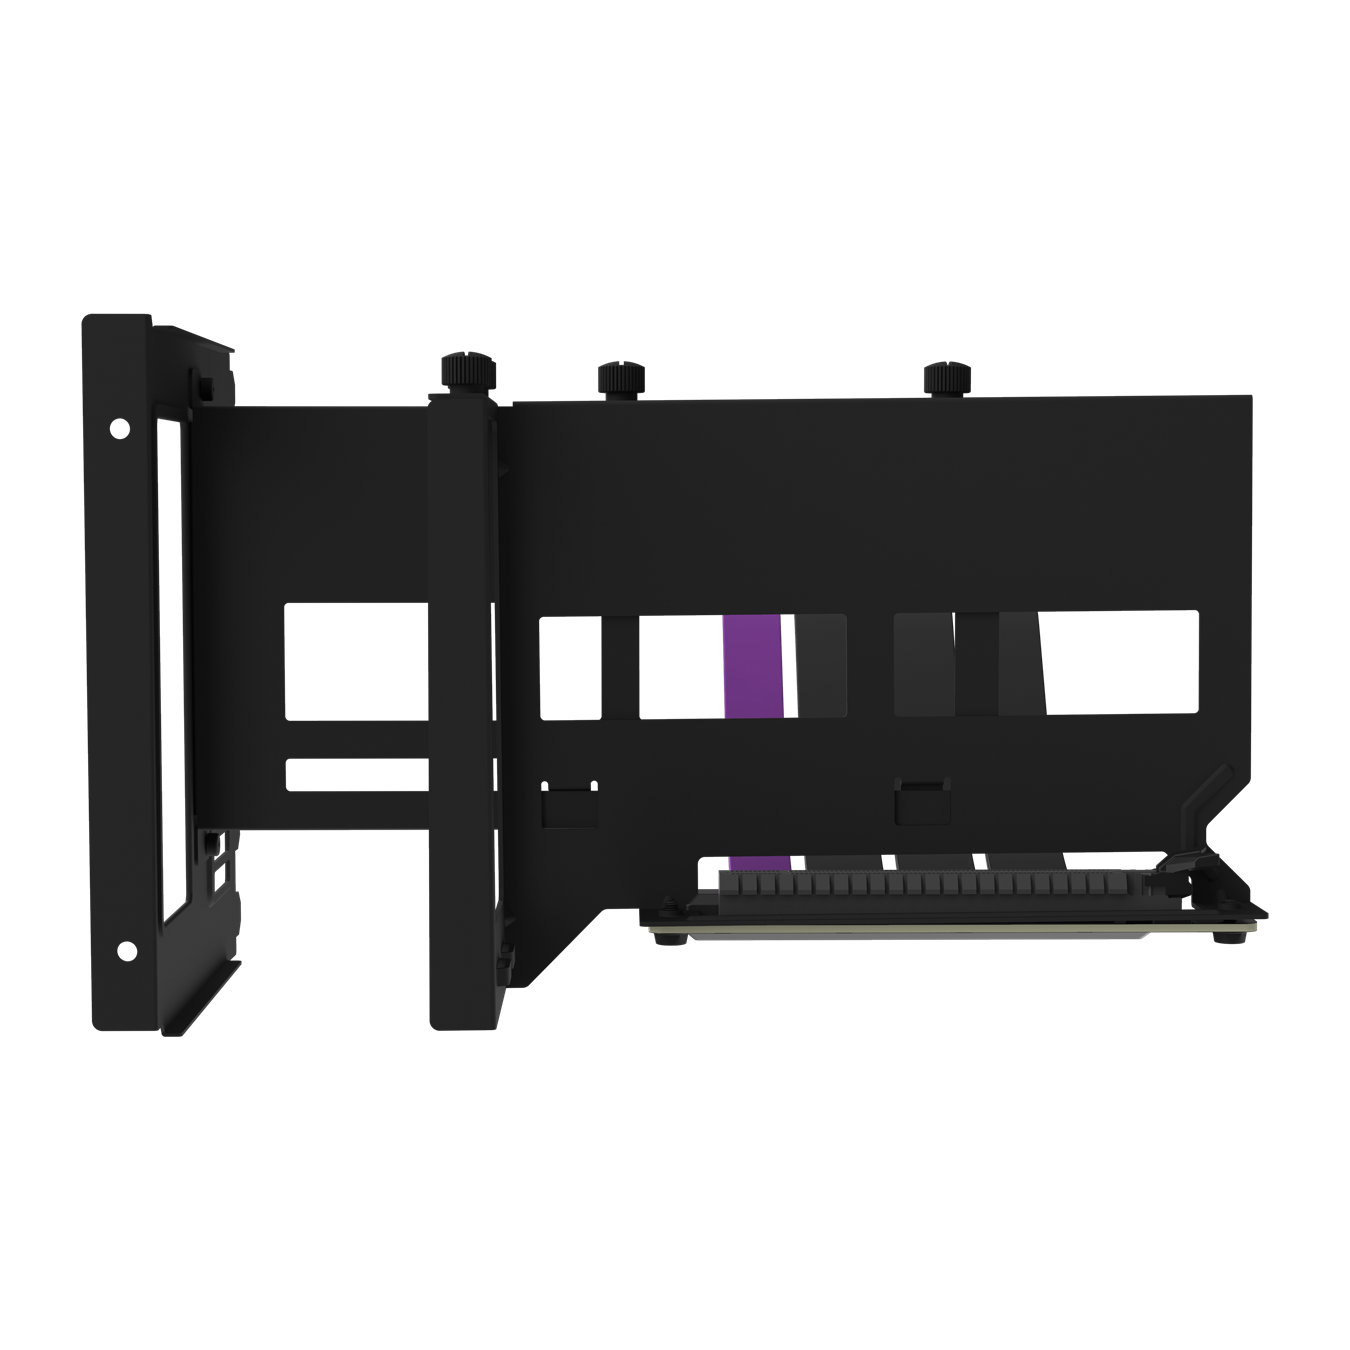 Front view of the black Universal Vertical GPU Bracket, extended to accomadate various case layouts and GPU lengths.